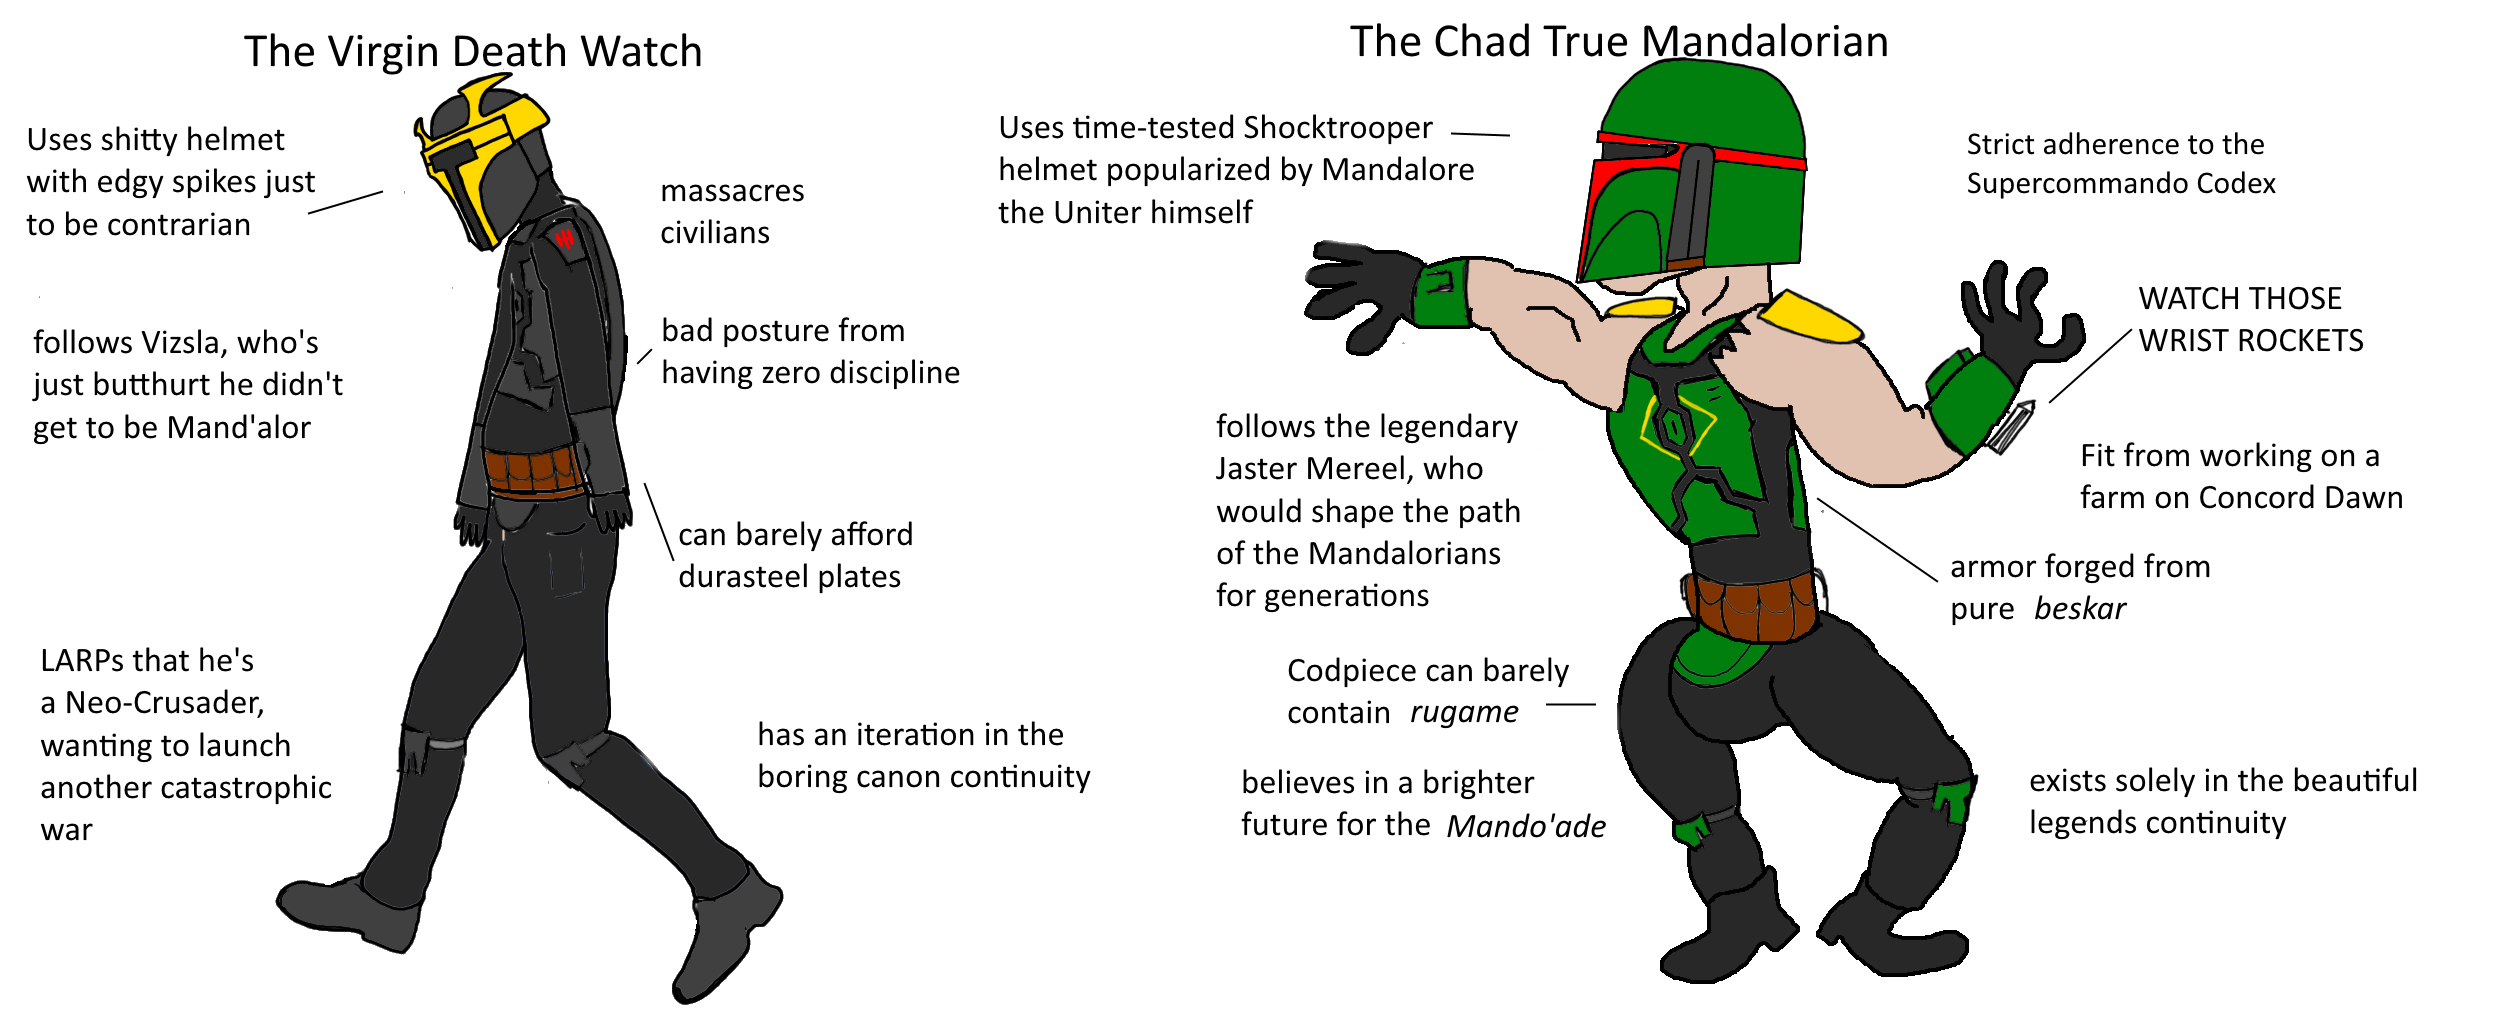 The Virgin Death Watch and the Chad True Mandalorian ...